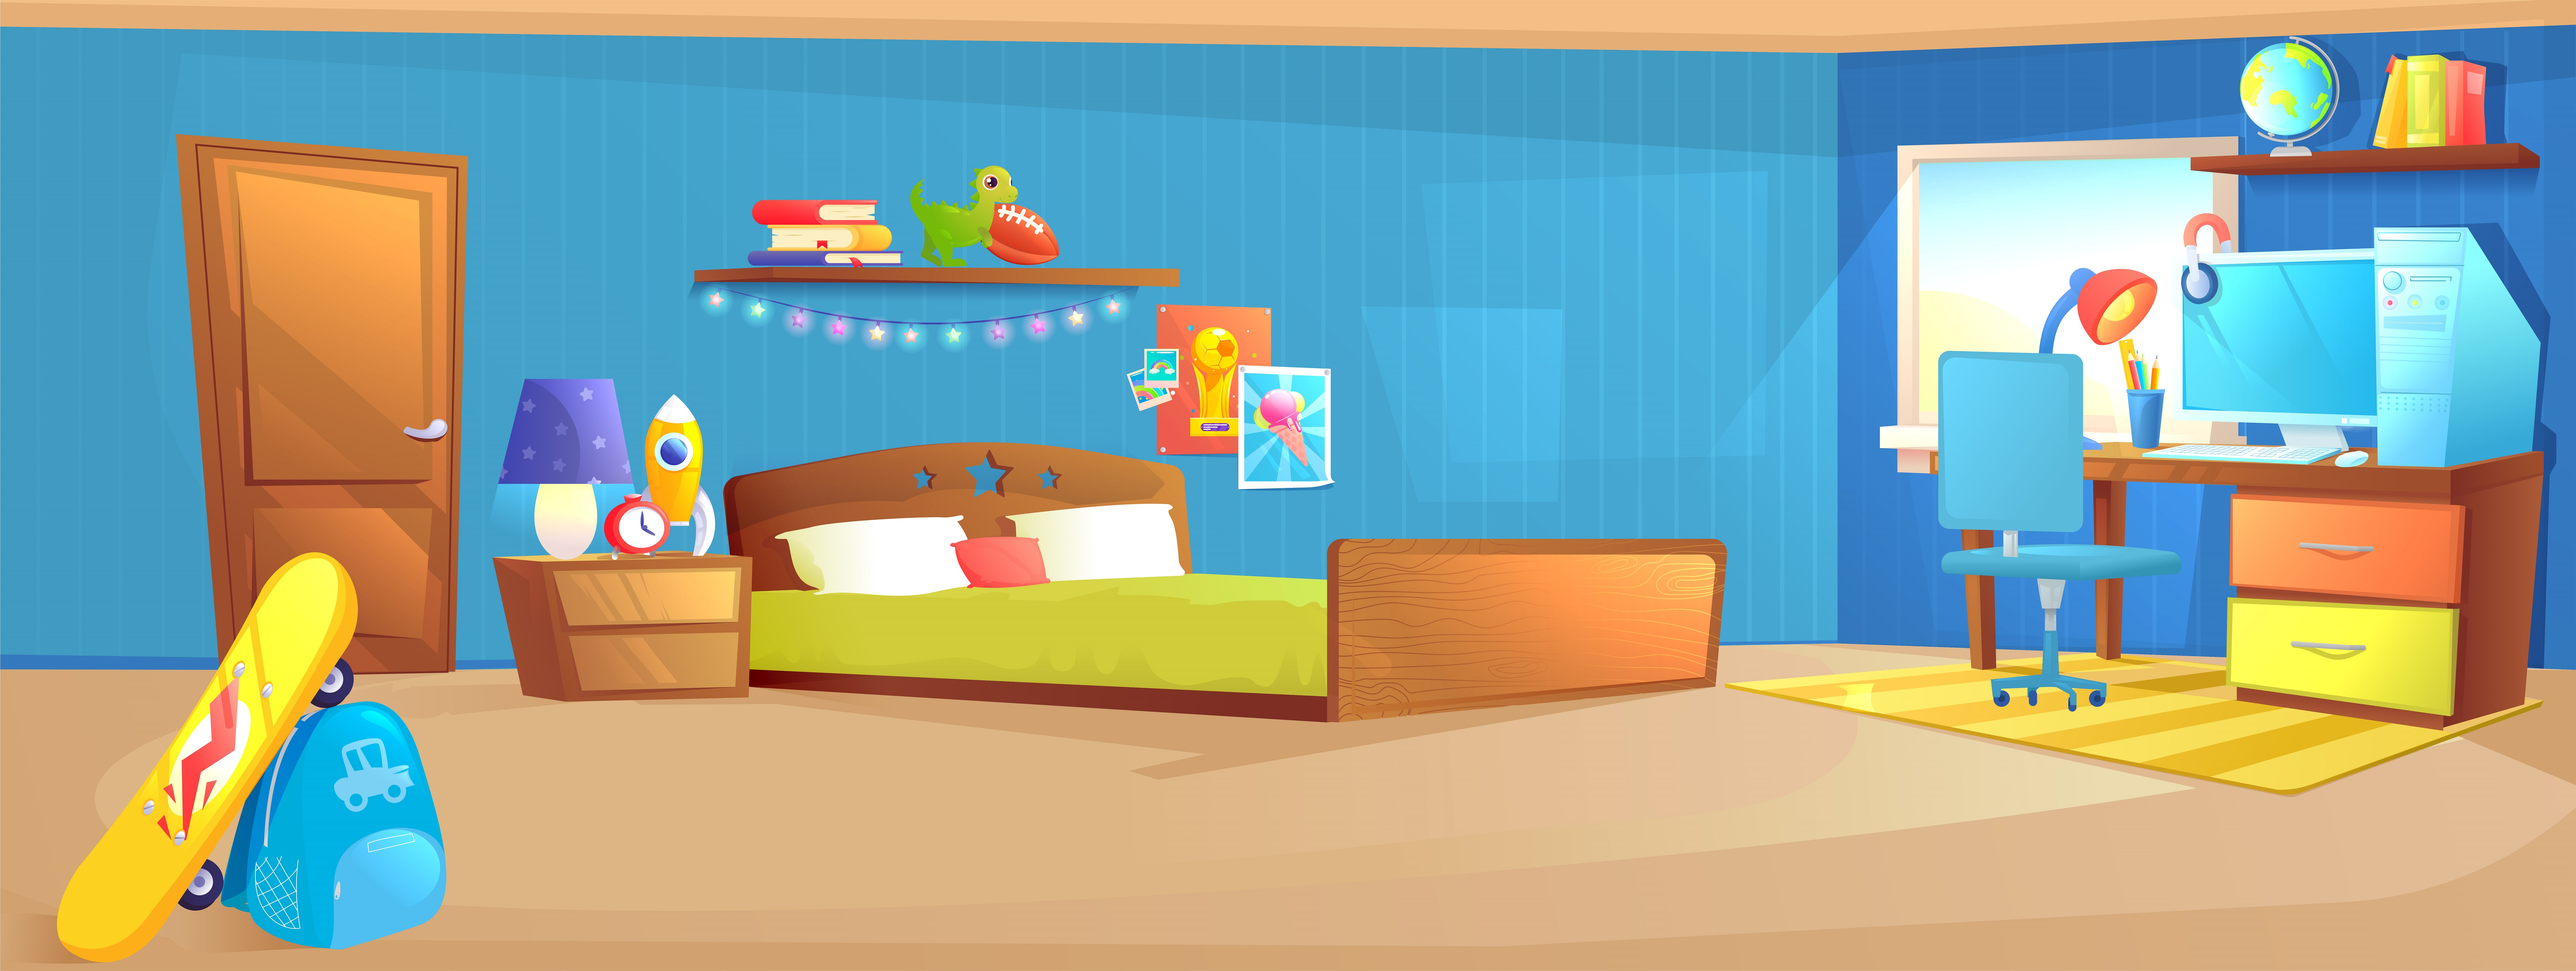 Teenager Boy Room Interior Design Banner With Bed Workplace With Desk And Pc Computer Shelves And Toys And Skateboard Vector Cartoon Illustration Download Free Vectors Clipart Graphics Vector Art